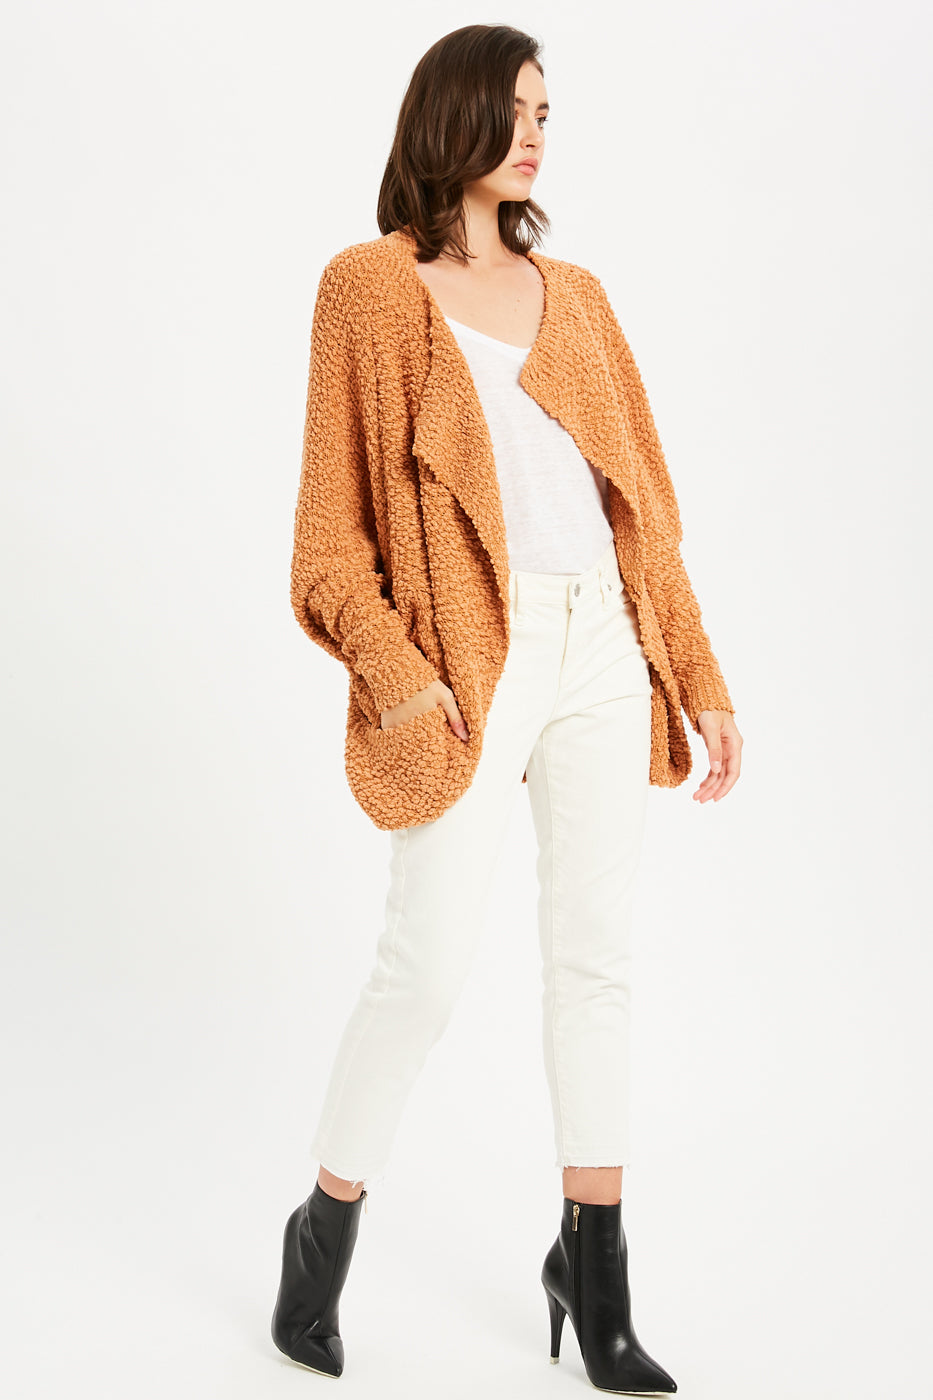 Boucle Comfy Cocoon Cardigan - Camel